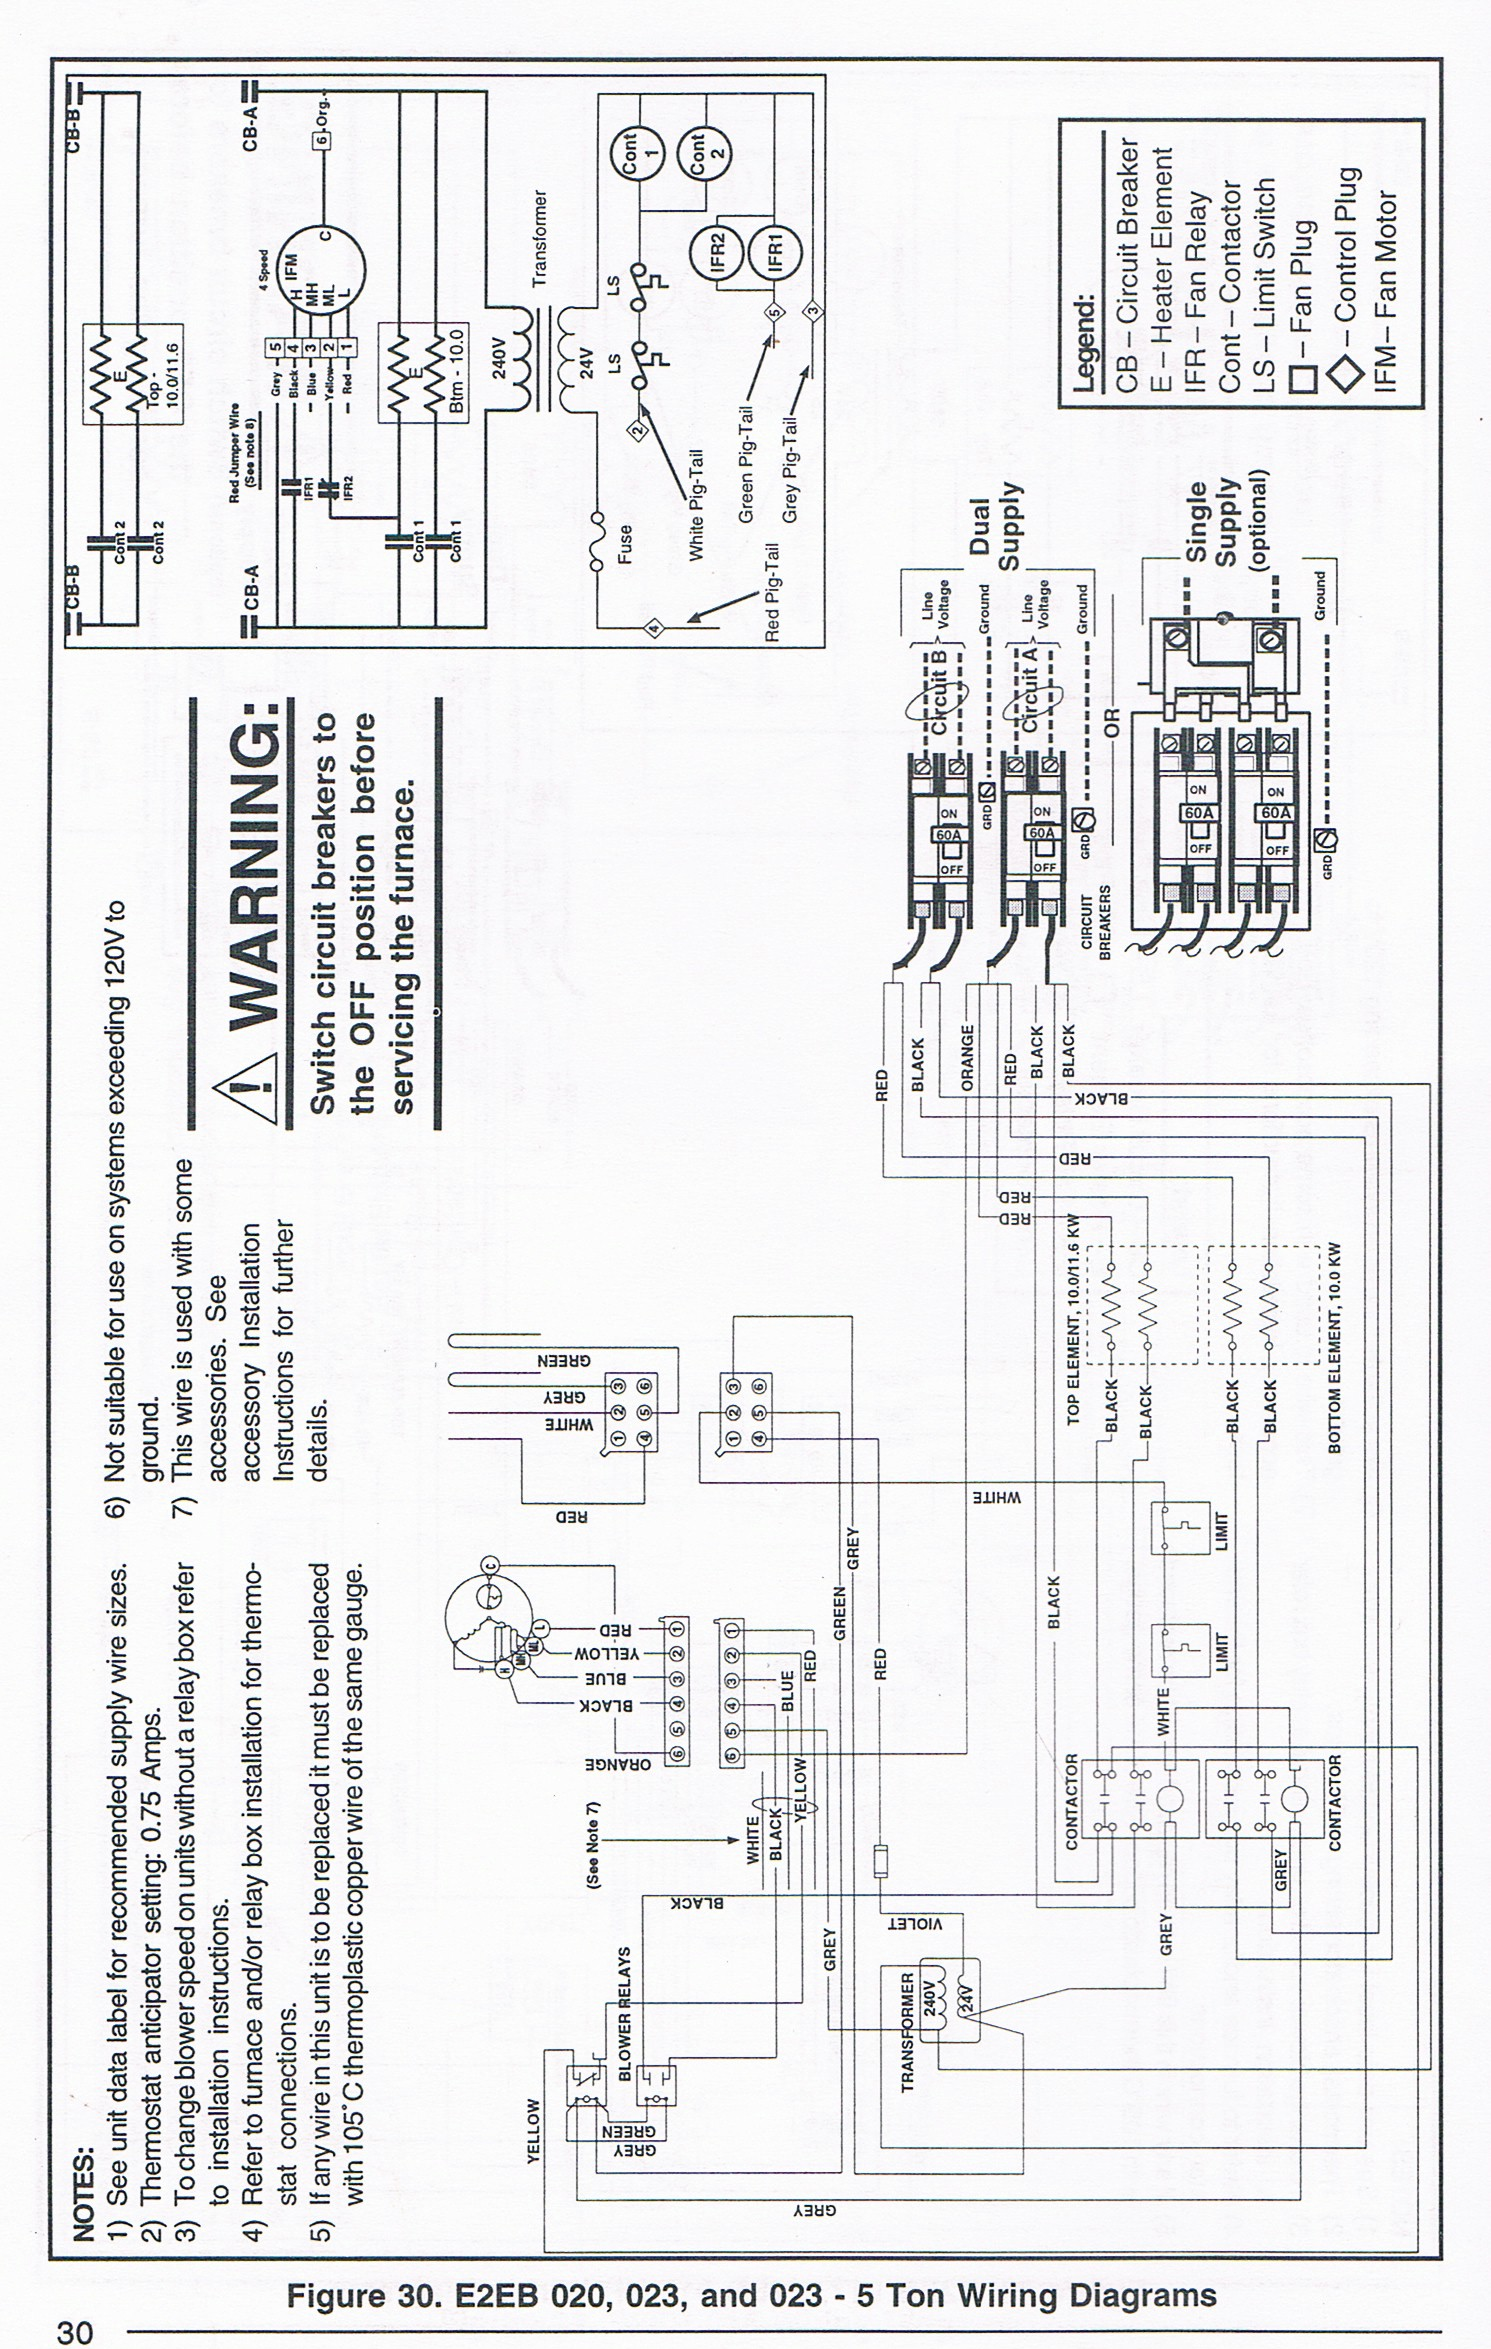 2011 05 04_234443_e2eb e2eb 017ha wiring diagram intertherm wiring diagram \u2022 wiring intertherm wiring diagram at soozxer.org